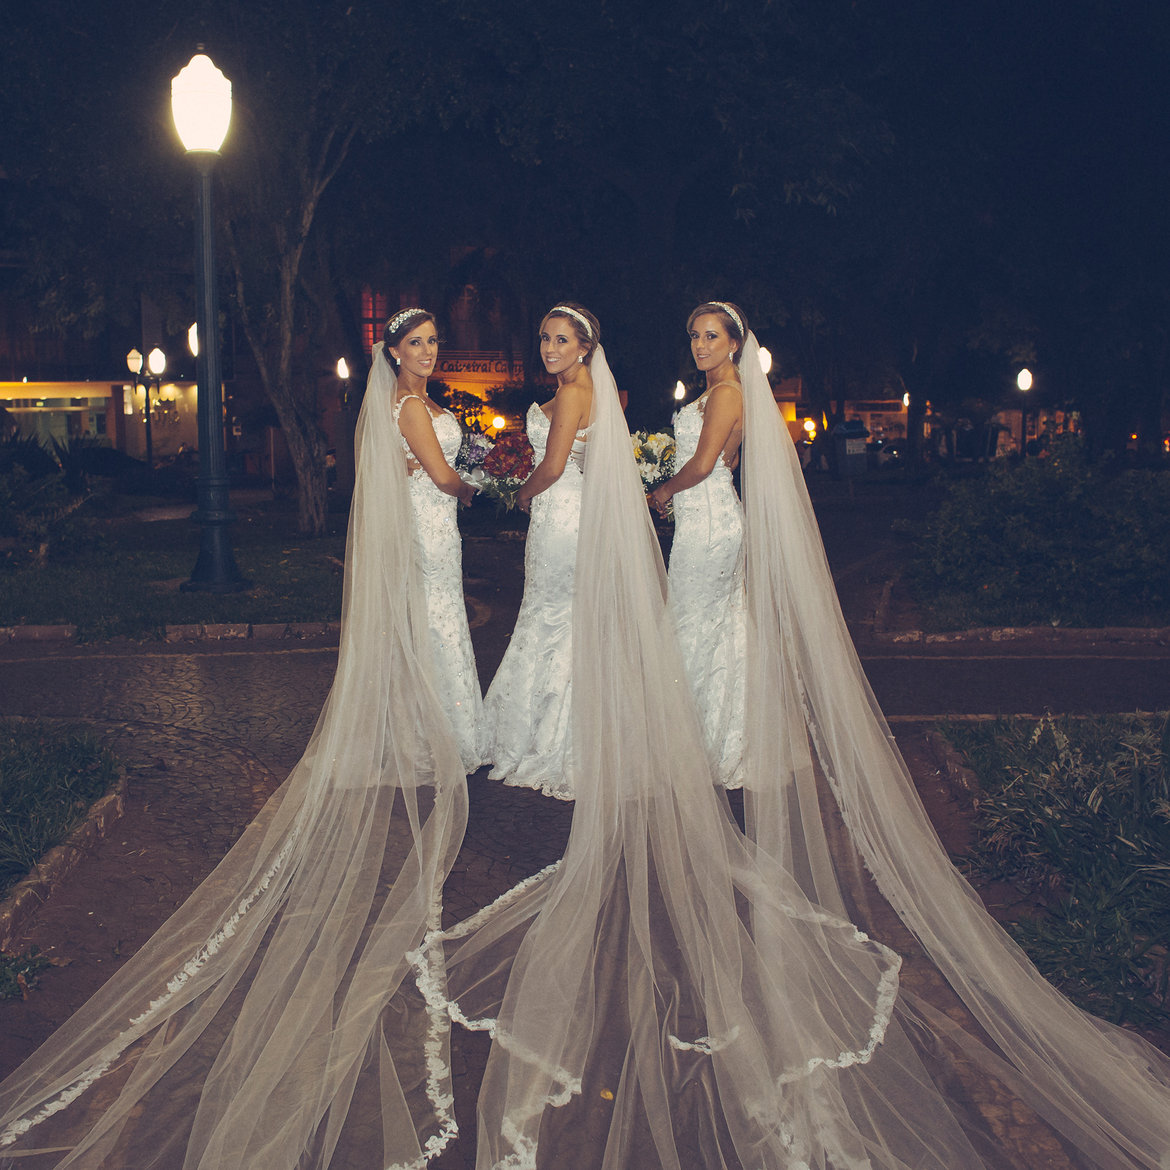 triplet wedding